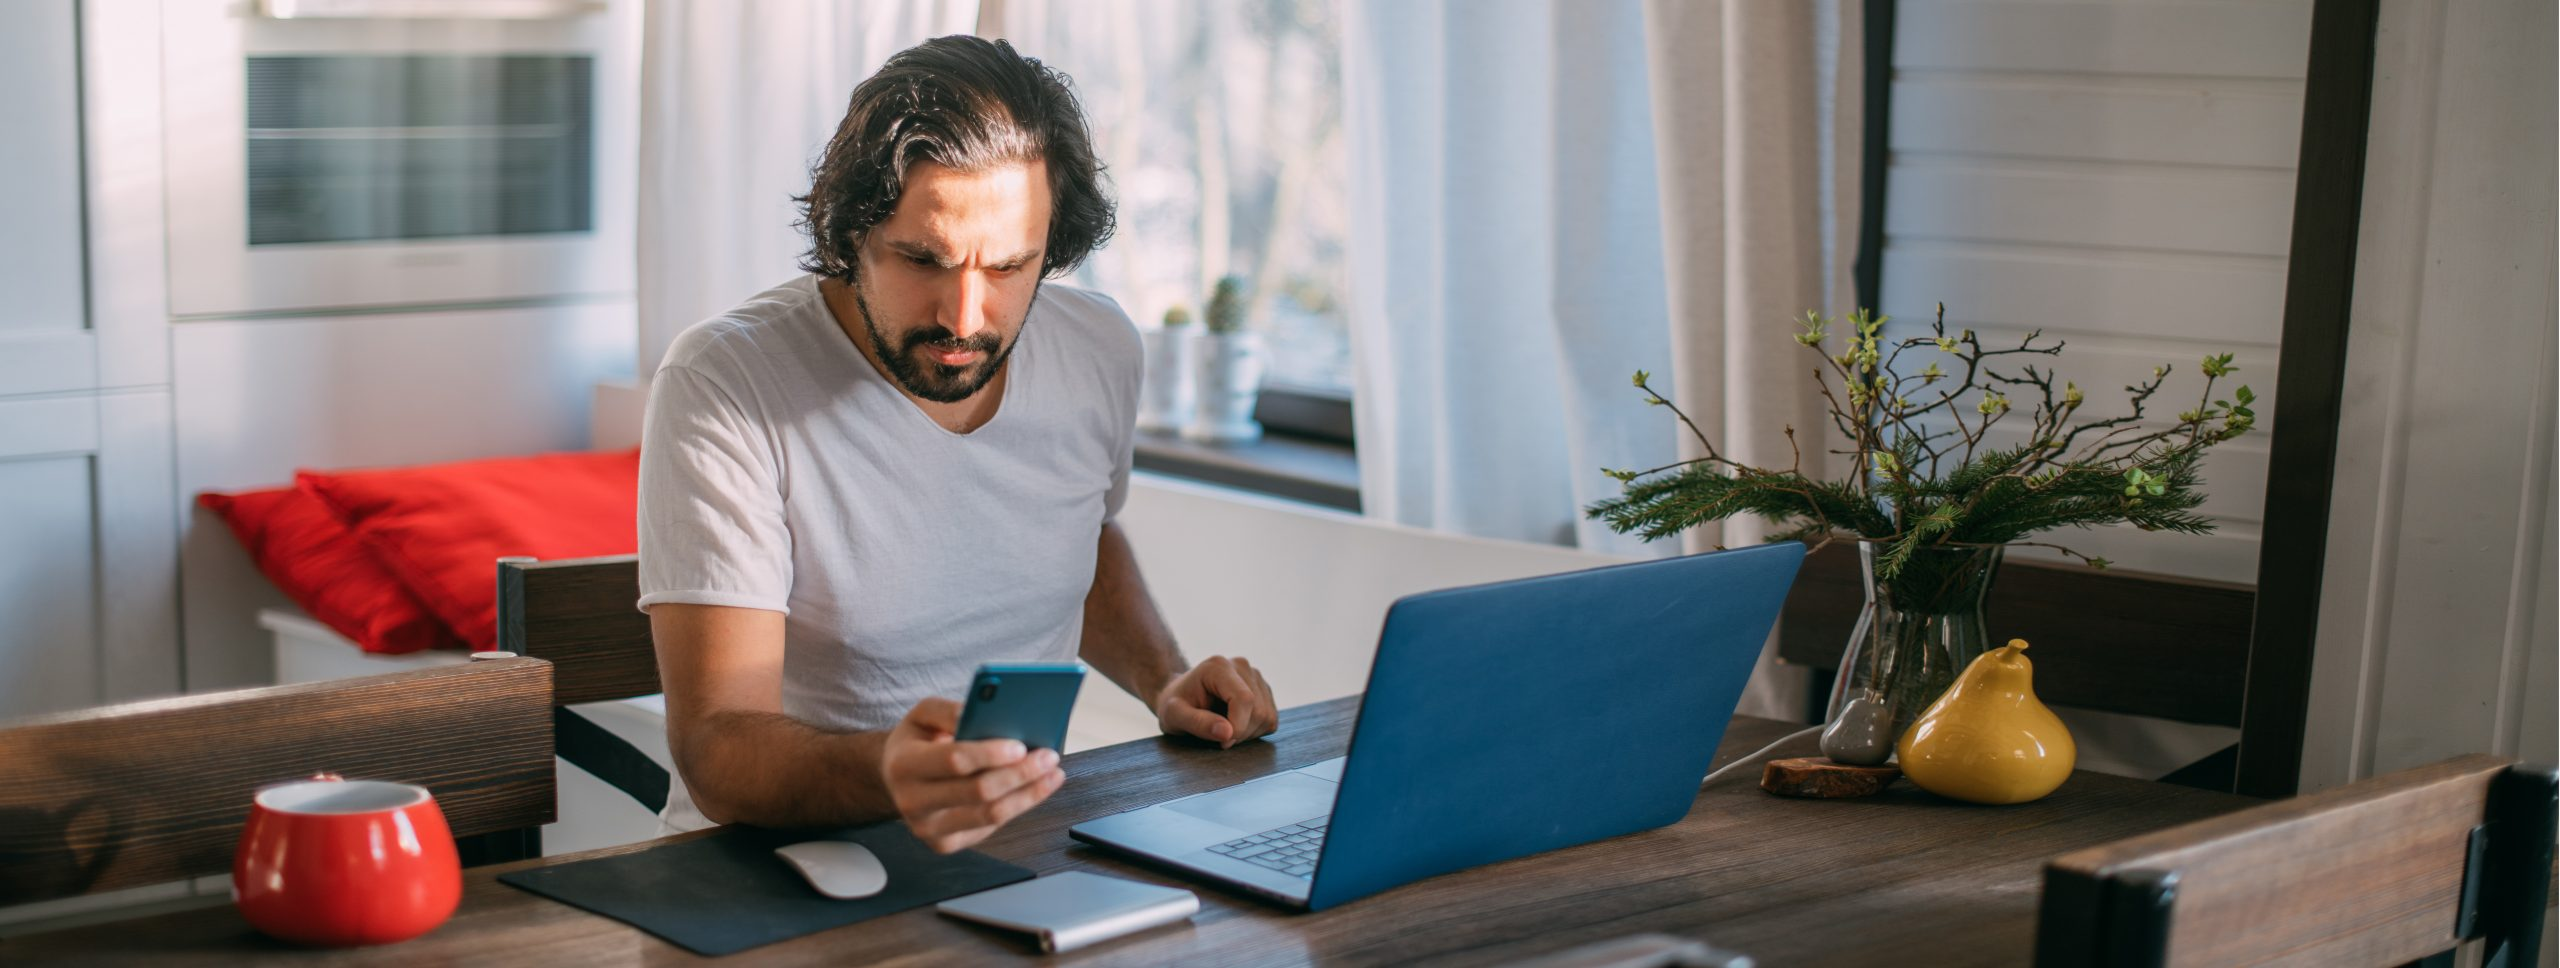 Workplace at home. A man works at a laptop at home